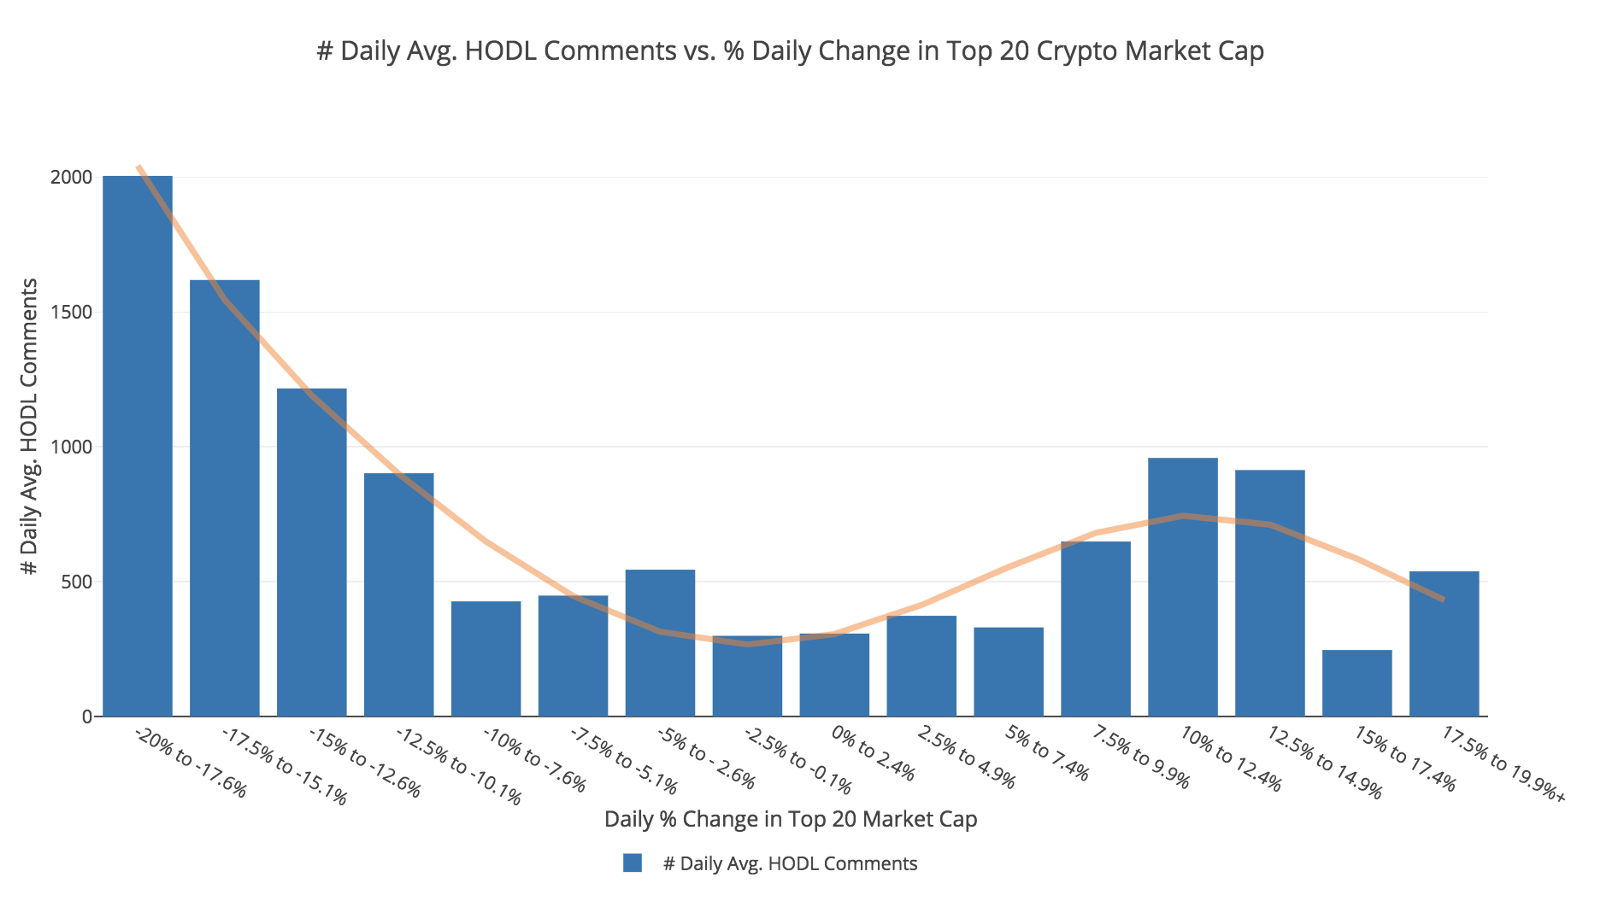 Market volatility increases the average number of HODL comments on Reddit